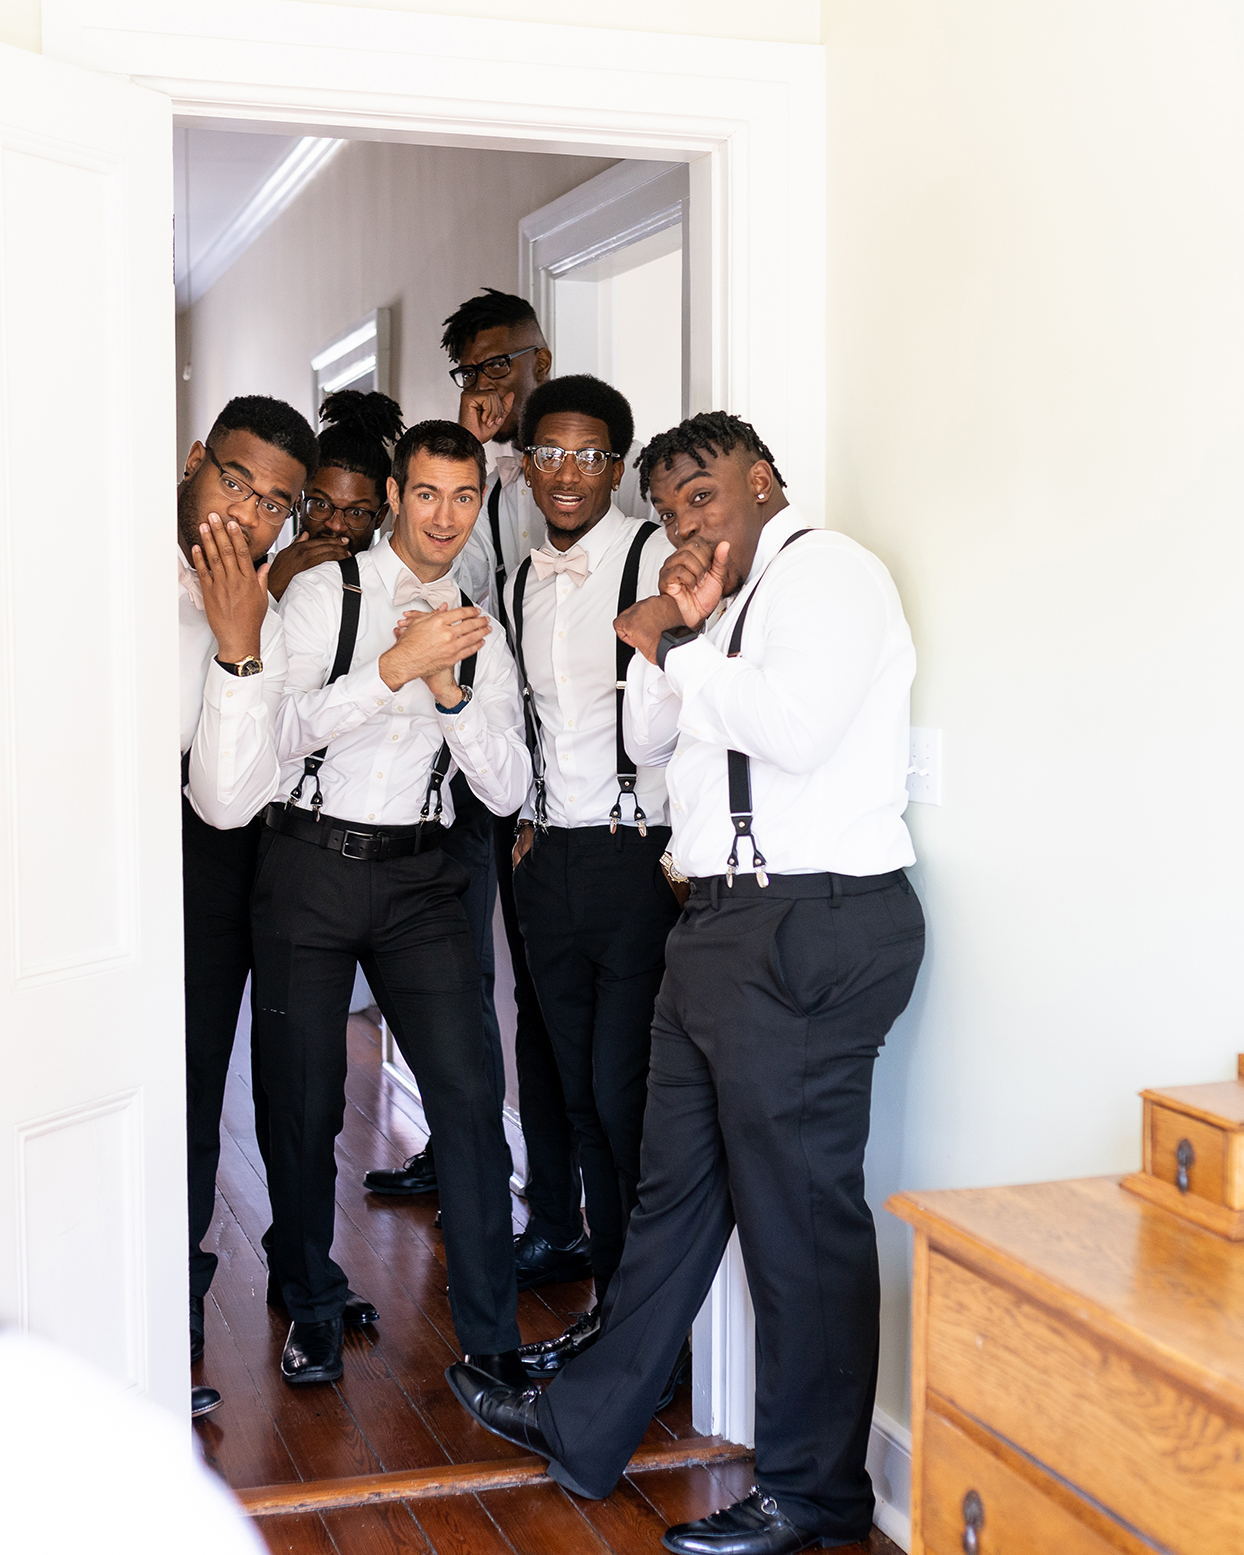 groomsmen in white shirts and black suspenders hanging out in doorway